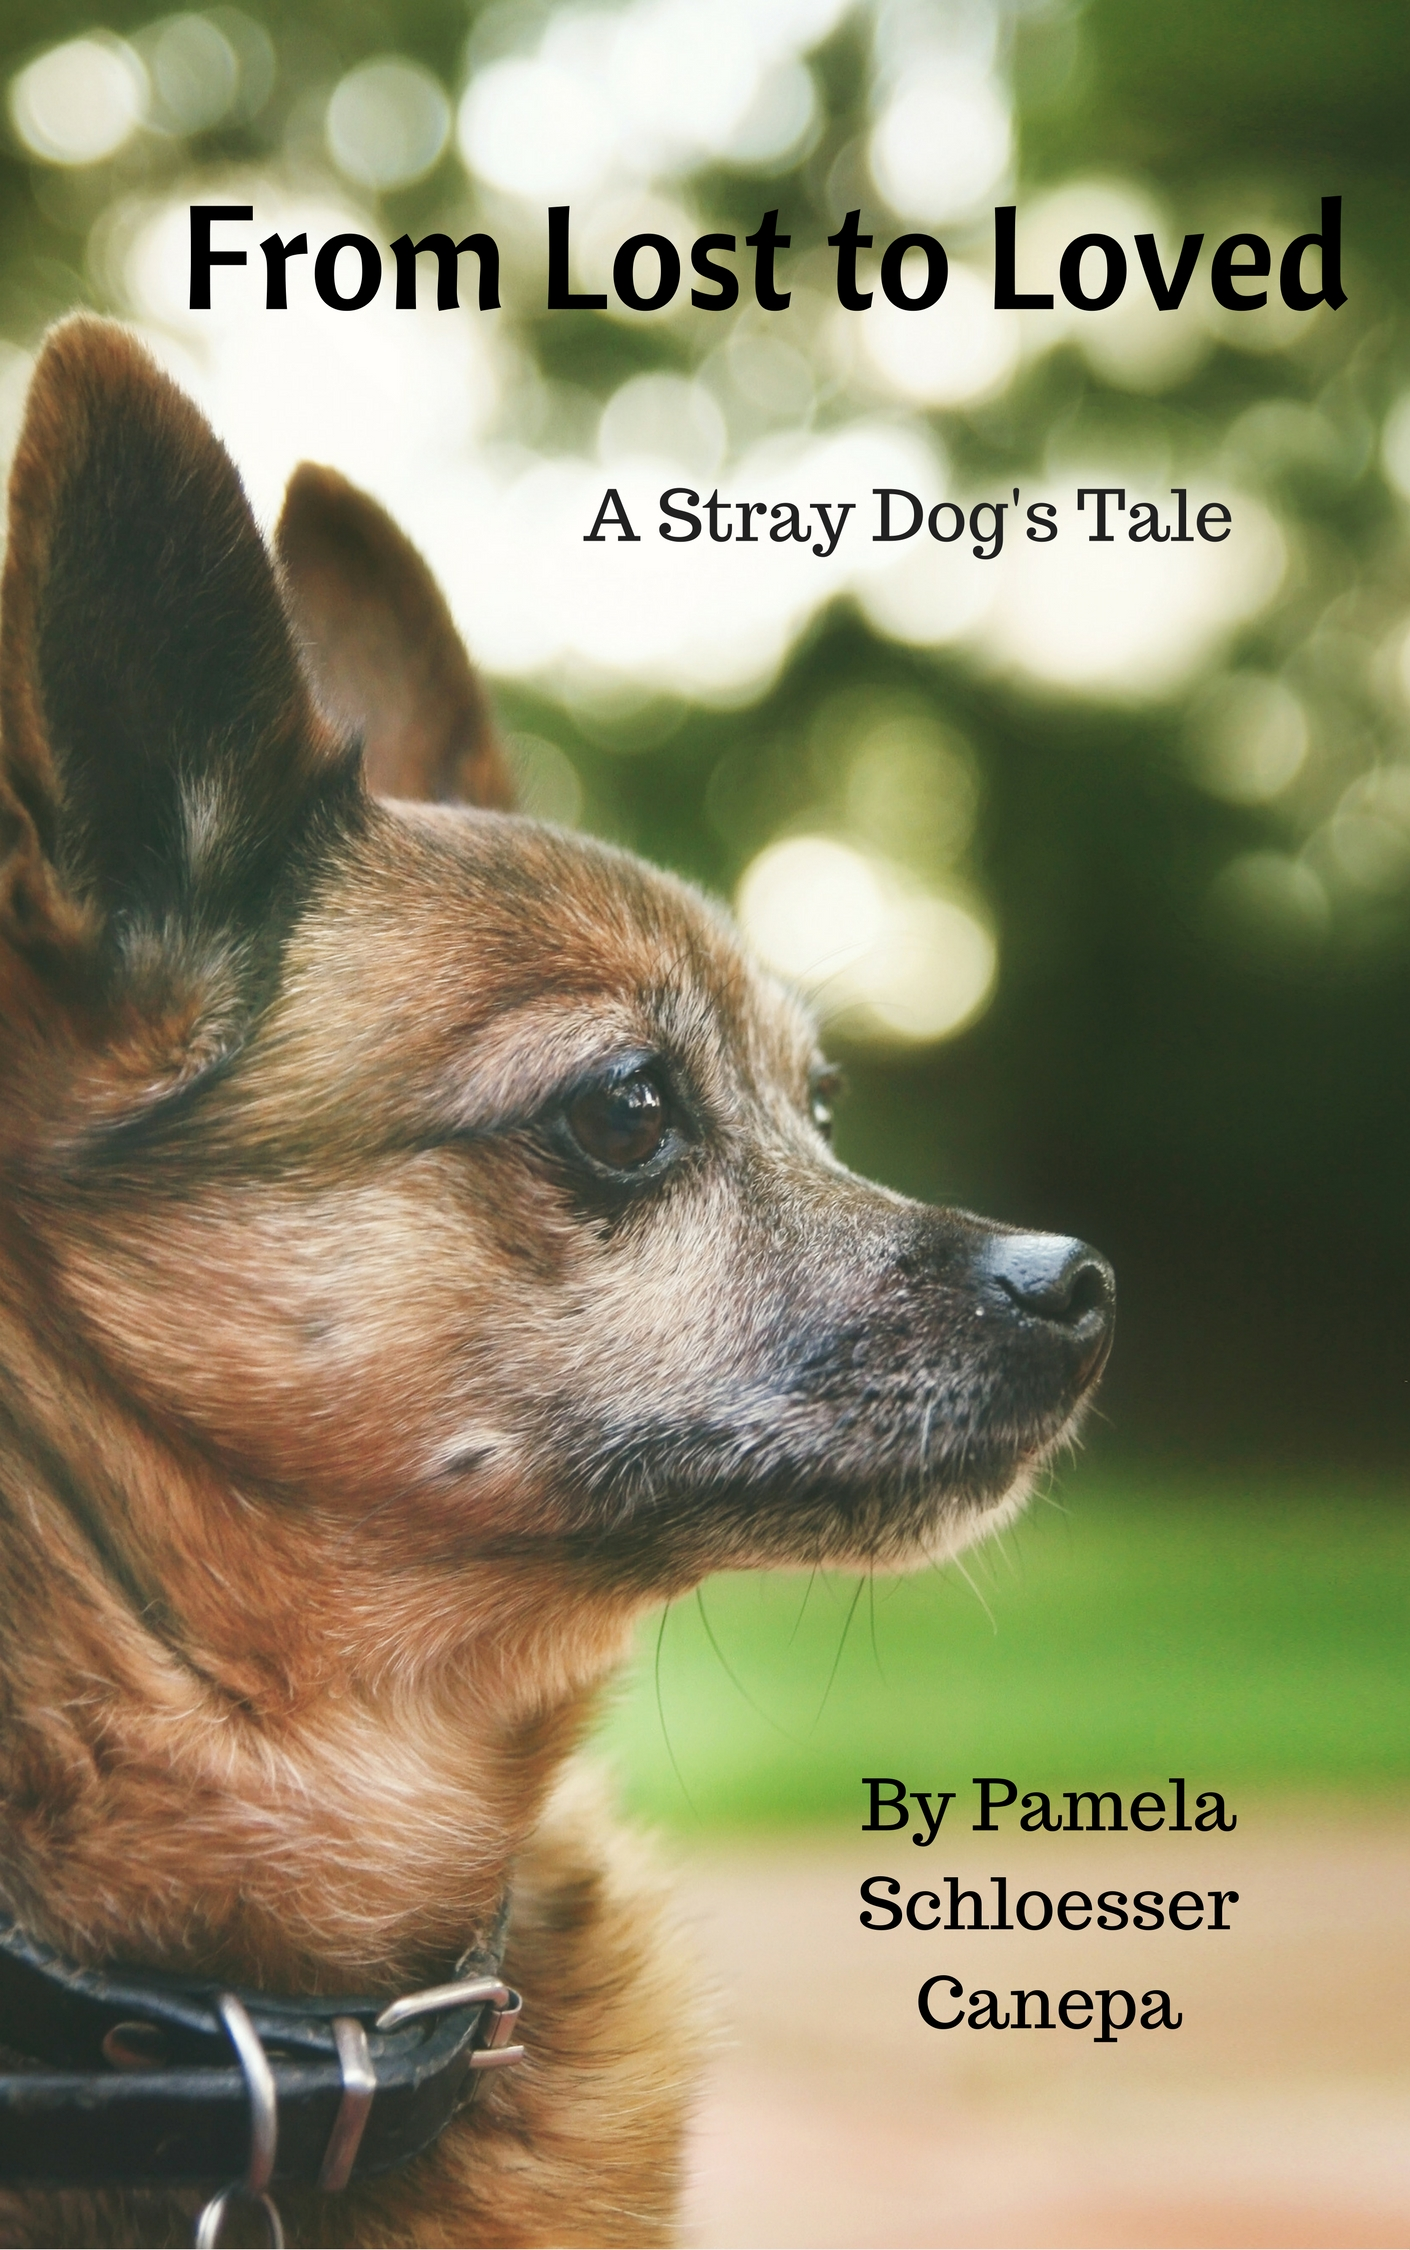 my experience of losing a beloved dog Pet loss help is offers grief support to those who have lost animal companions visitors are encouraged to memorialize their pets through free online postings about their lives.